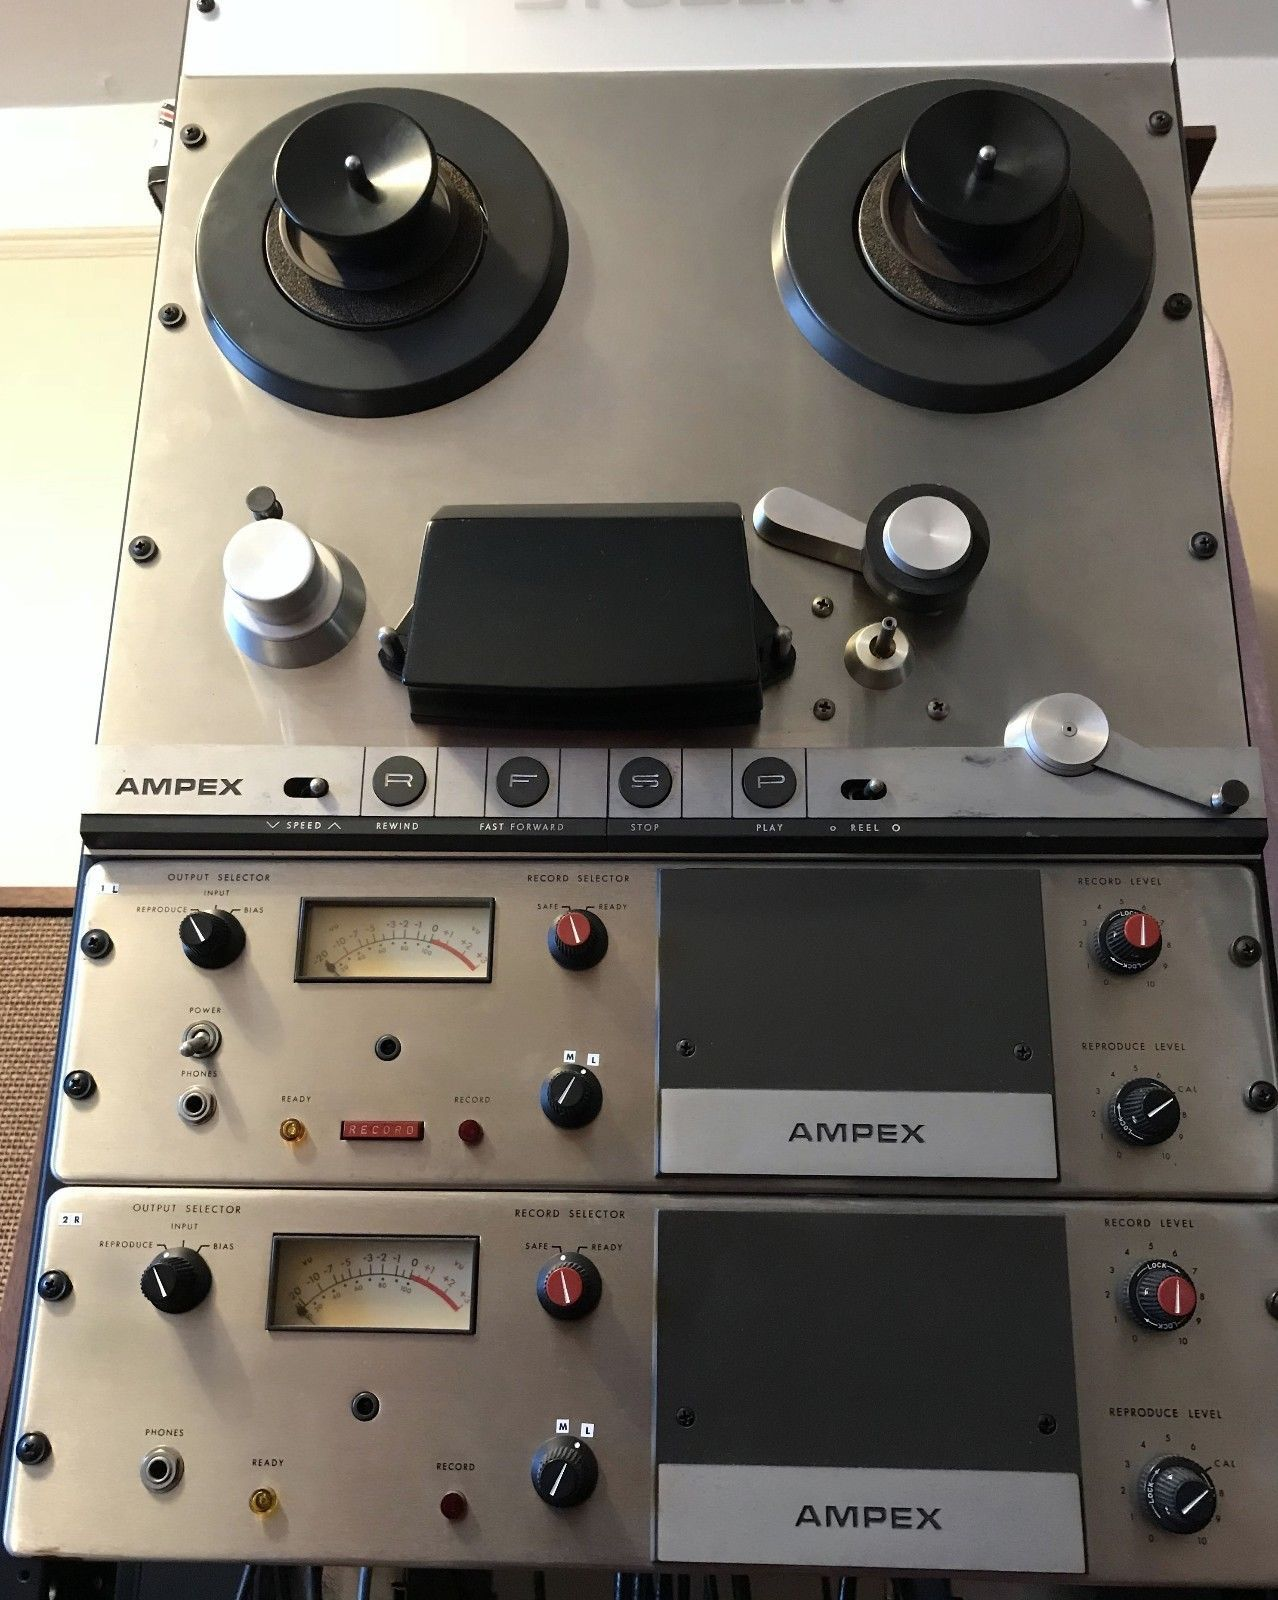 Ampex Ag 350 Reel To Reel Tape Deck Recorder Two Track 7 1 2 15 Pro Tape Deck Tape Recorder Deck